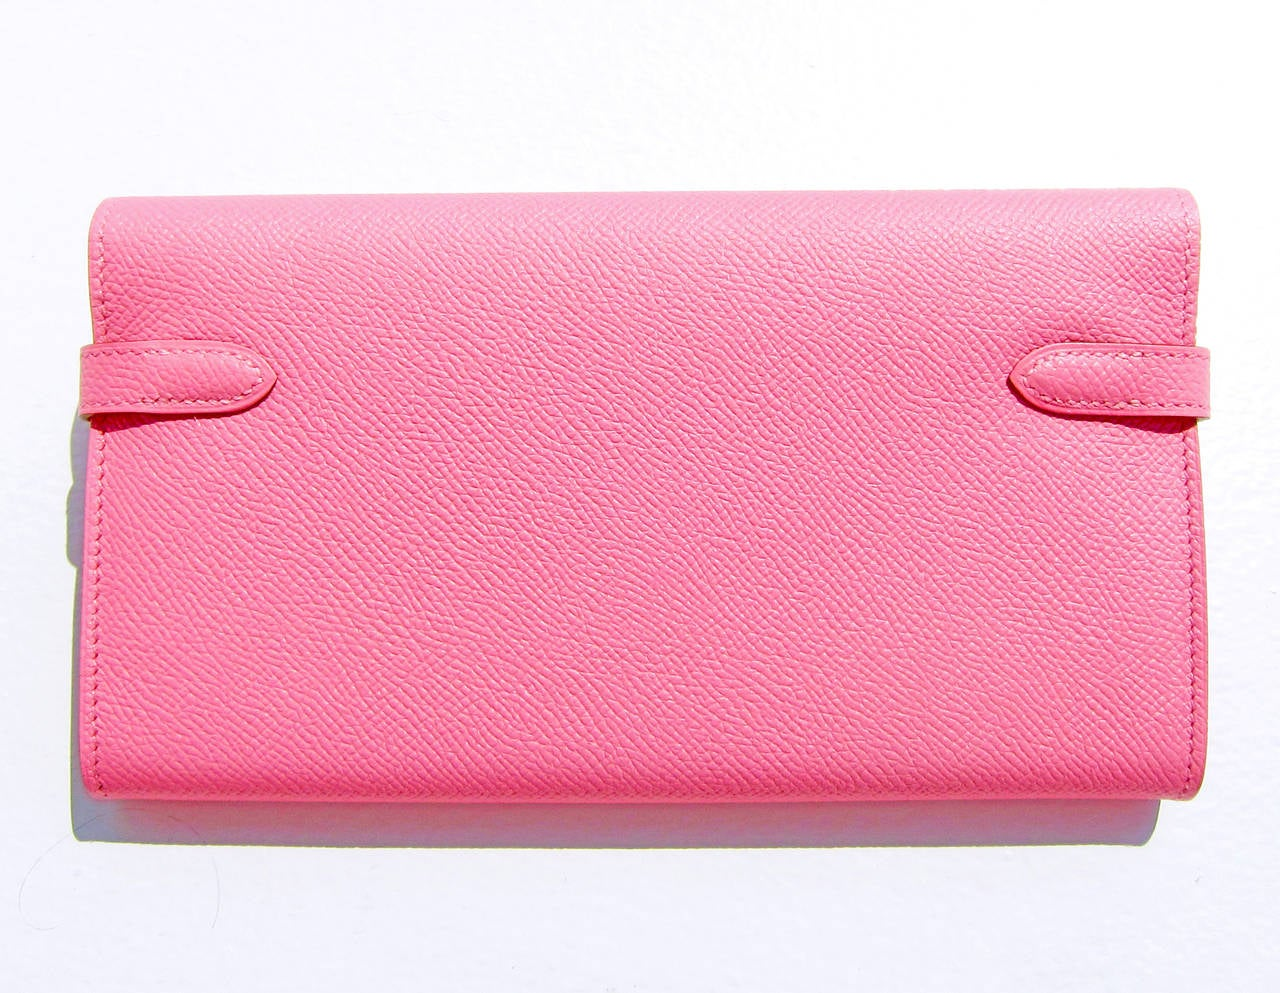 Hermes Rose Confetti Epsom Kelly Long Leather Wallet Permabrass Hardware 3